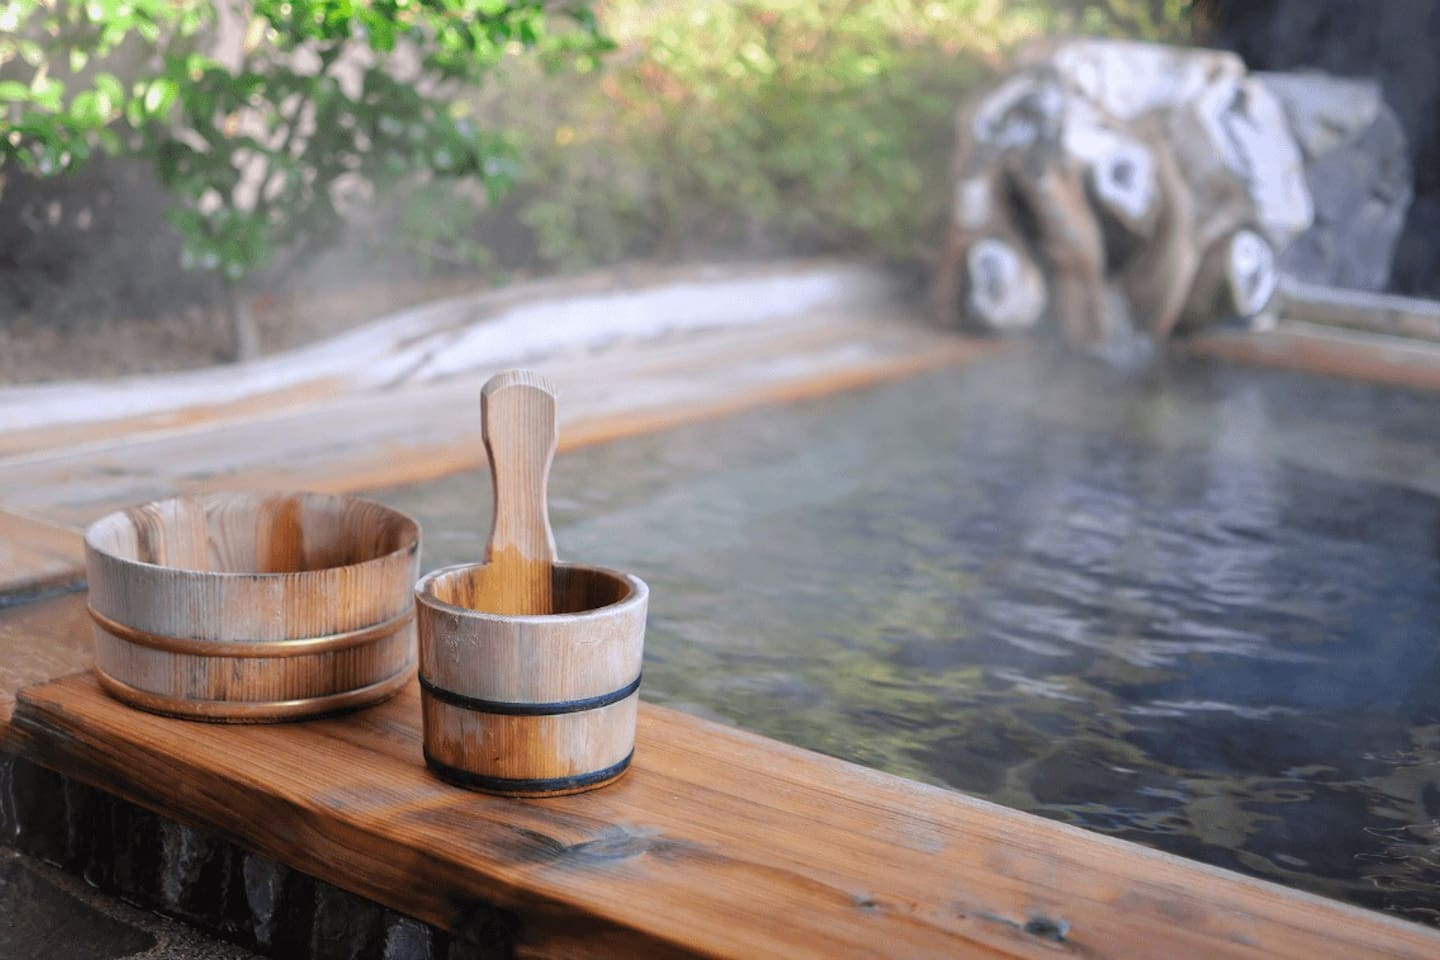 Enjoy hot spring at takeo city!:)